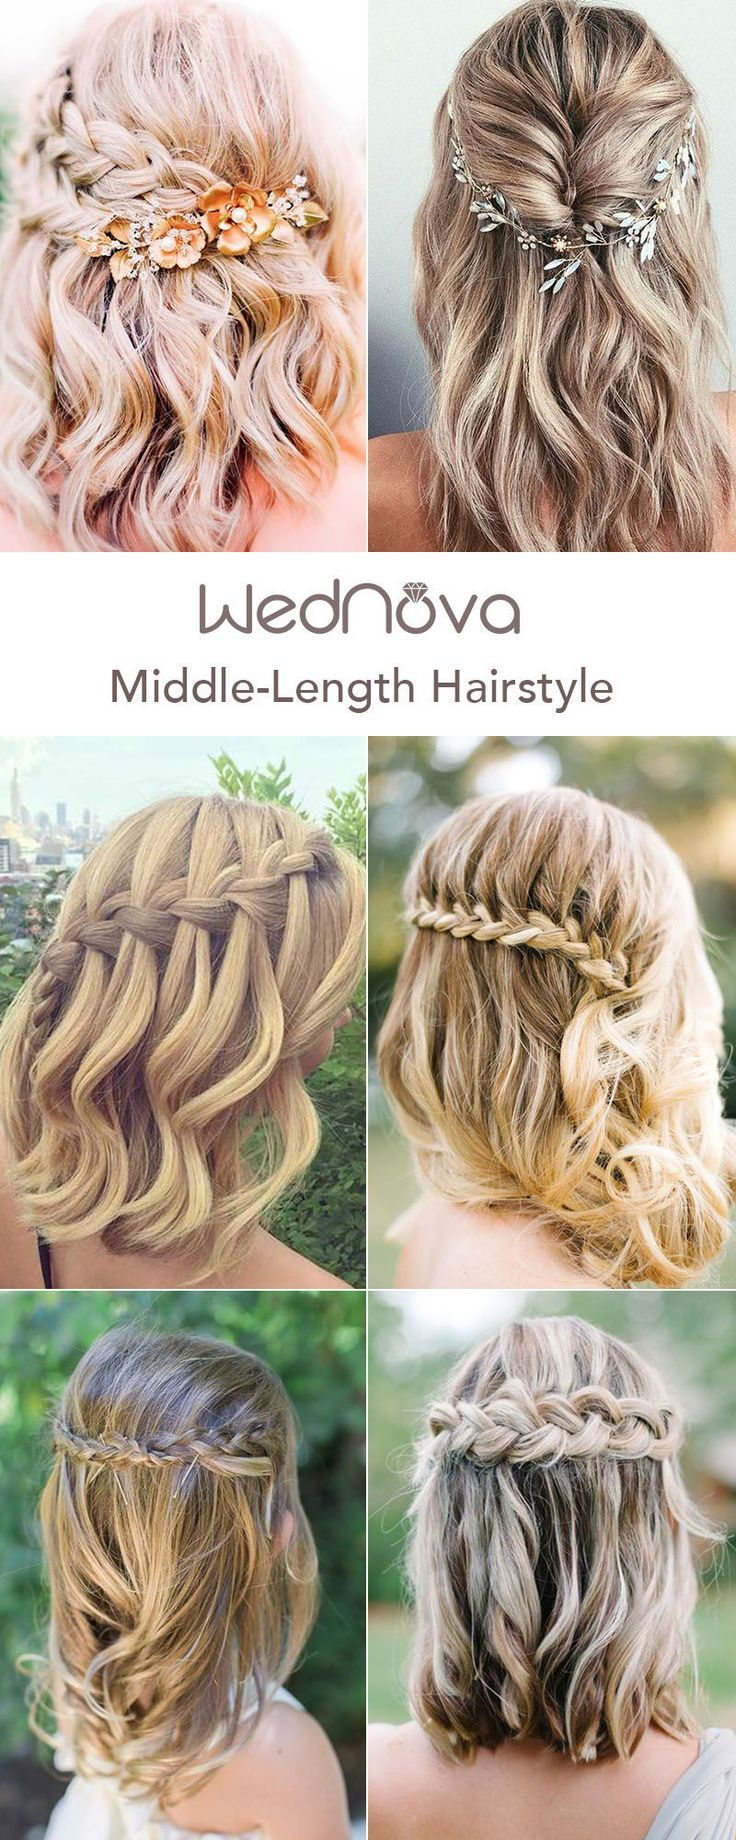 48 Easy Wedding Hairstyles Best Guide For Your Bridesmaids In 2019 Short Wedding Hair Half Up Half Down Short Hair Bridesmaid Hair Medium Length